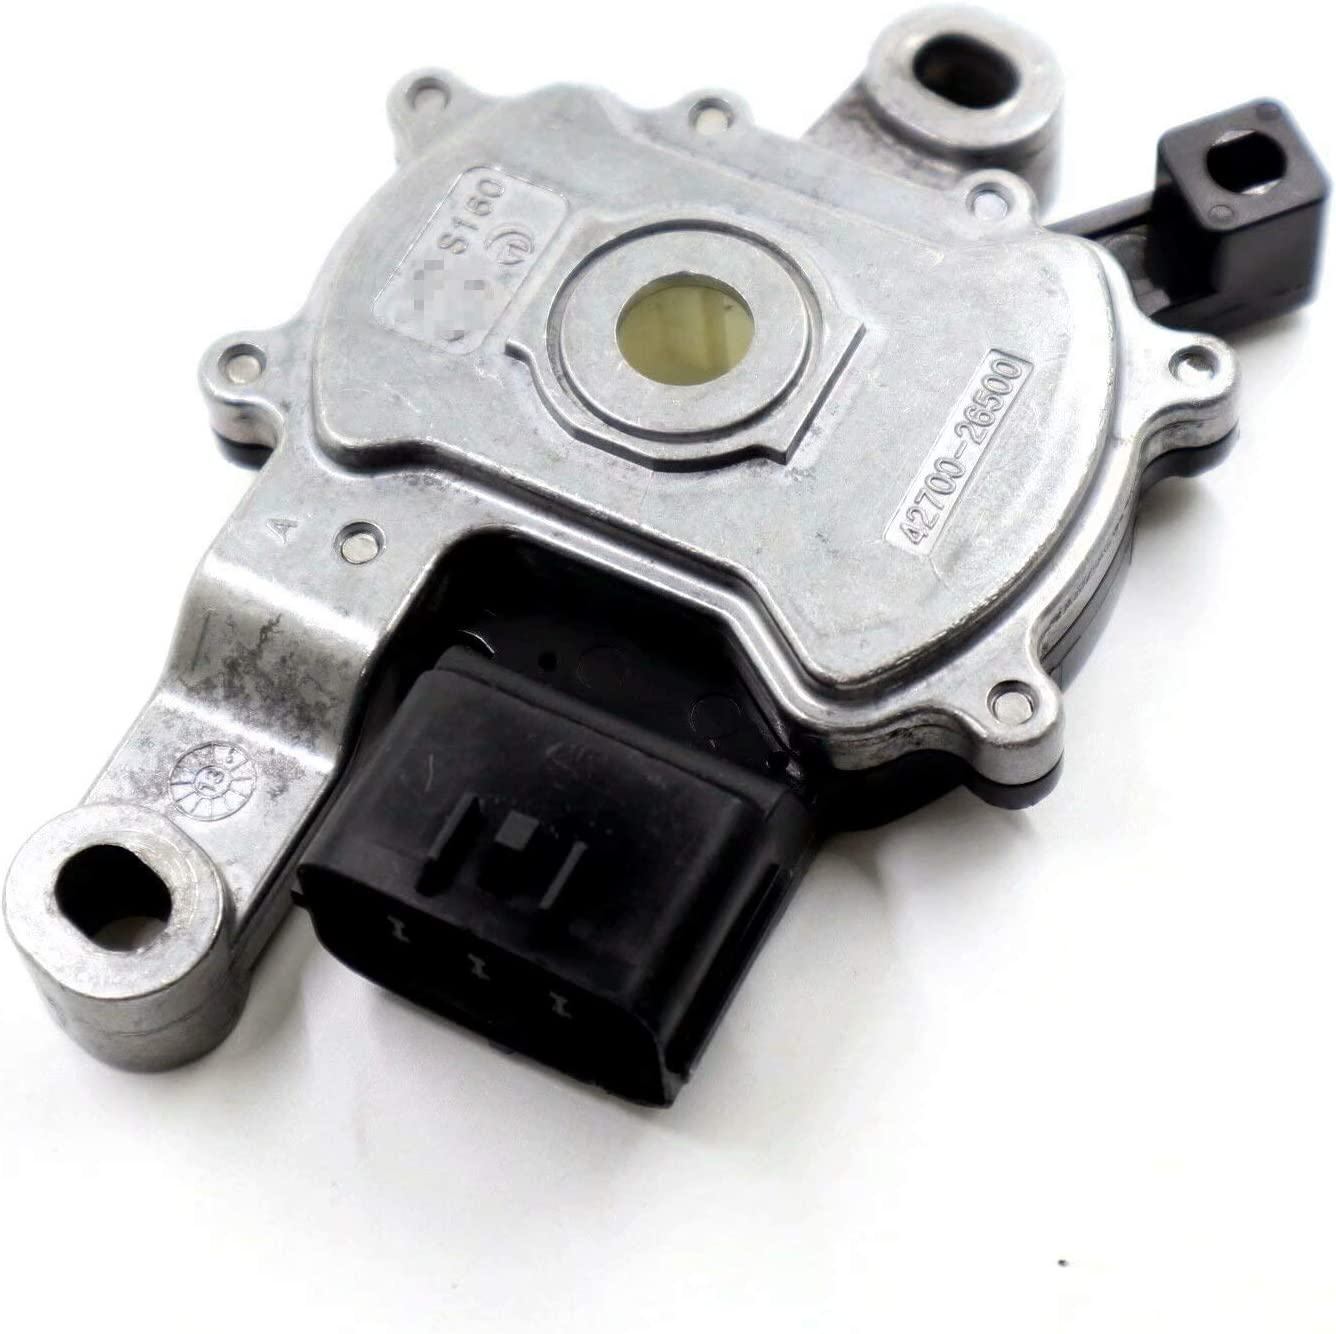 Winison Inhibitor Neutral Safety Switch for Hyundai KIA 11-17 4270026500